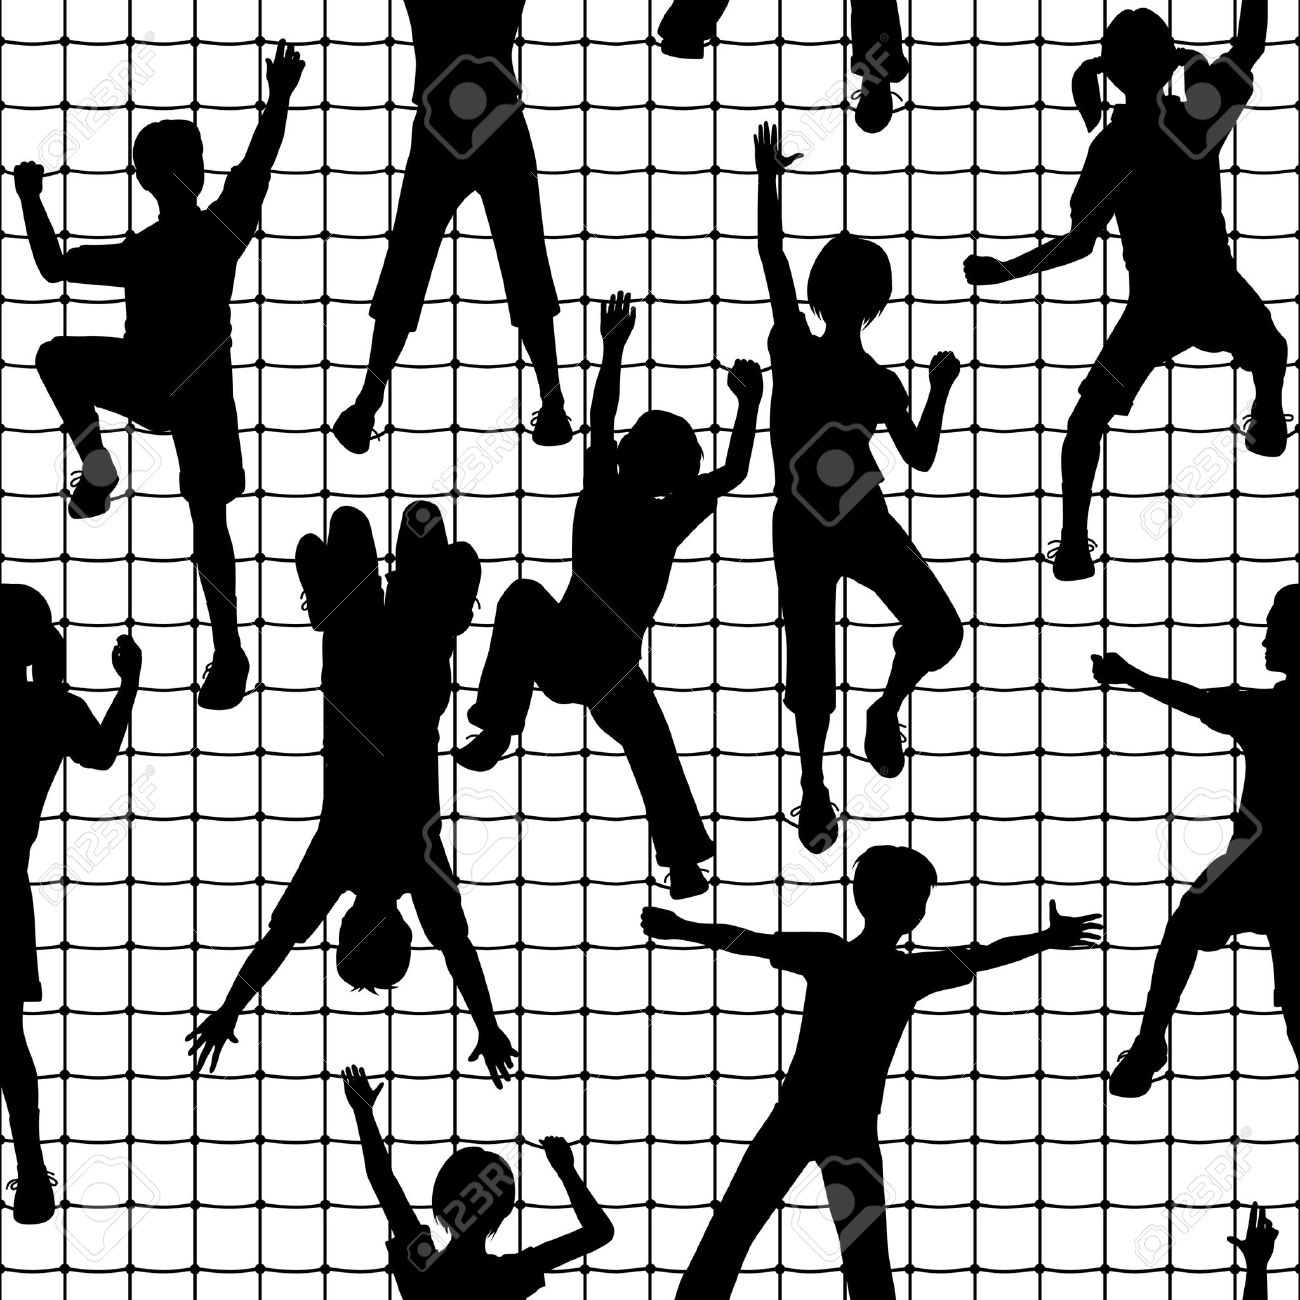 Editable Seamless Tile Of Children Silhouettes Climbing A Rope.